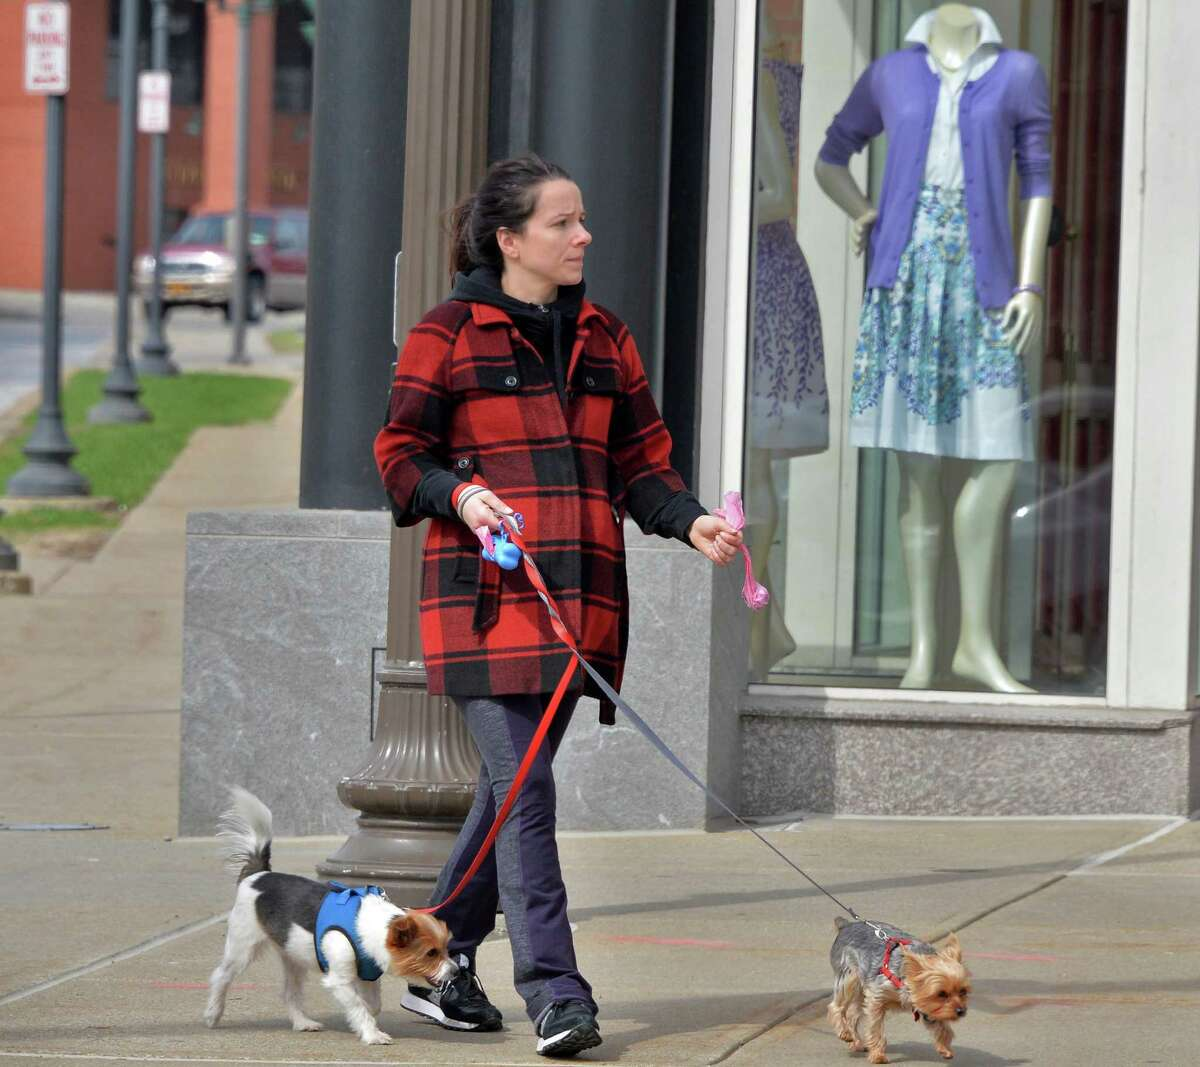 Janelle Tavormina of Saratoga Springs walks her dogs Pumpernickel and Gimlet past shop windows along Broadway Thursday April 17, 2014, in Saratoga Springs, N.Y. (John Carl D'Annibale / Times Union)